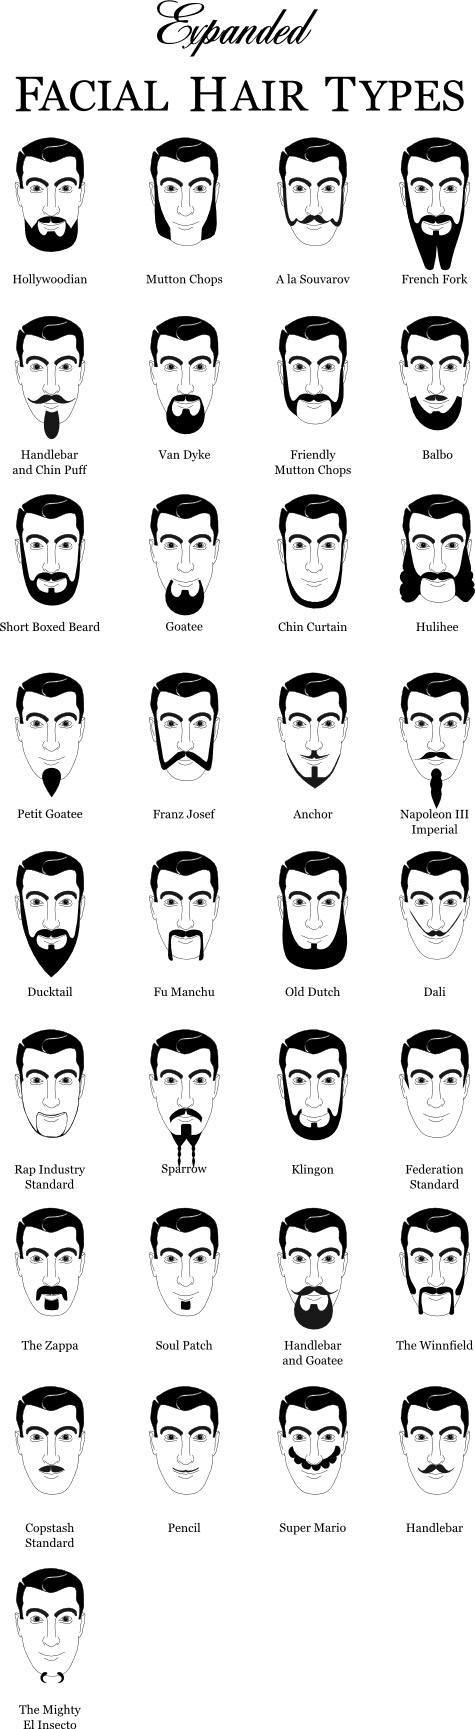 33 popular beard styles great ideas for styling your beard. Black Bedroom Furniture Sets. Home Design Ideas